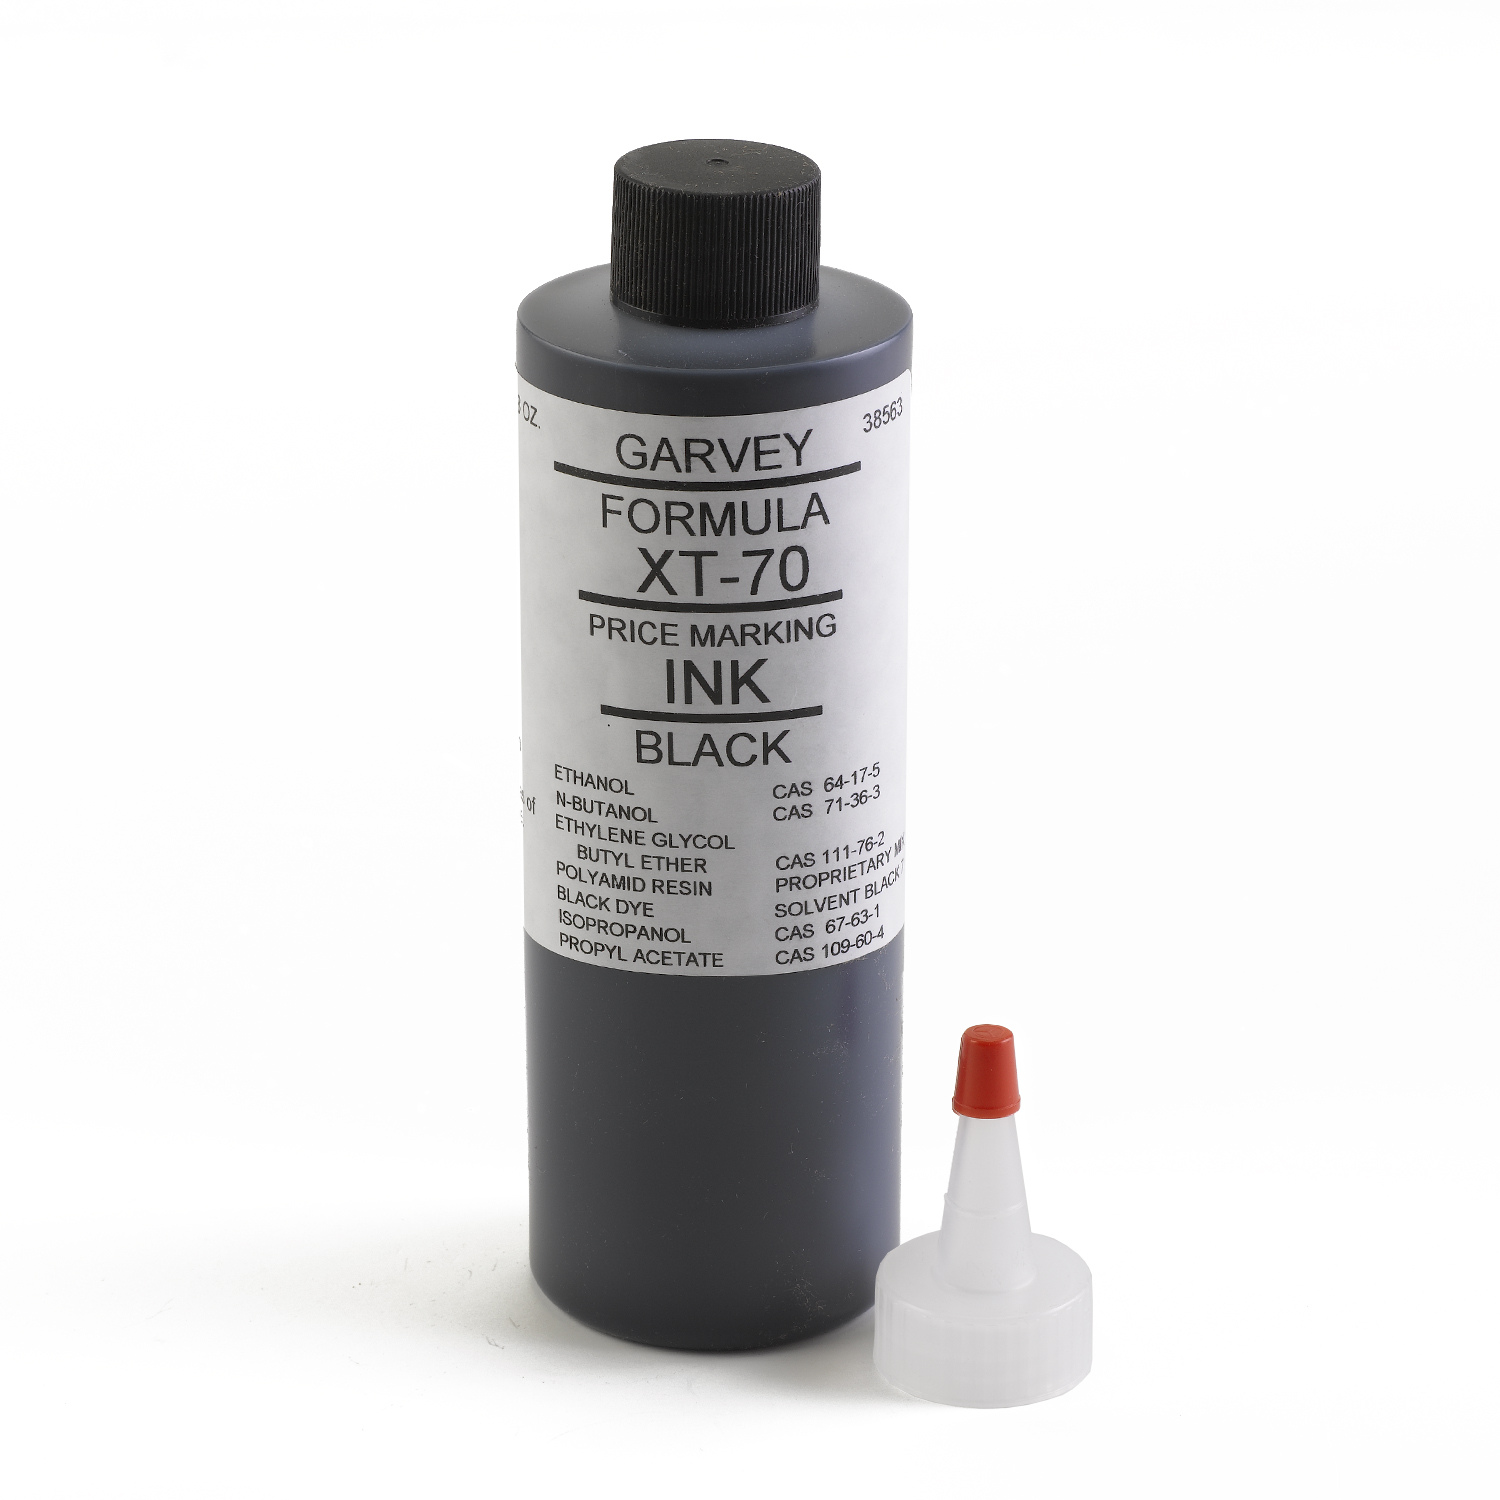 Garvey Black Price Marking Ink 8 oz - INK-38563